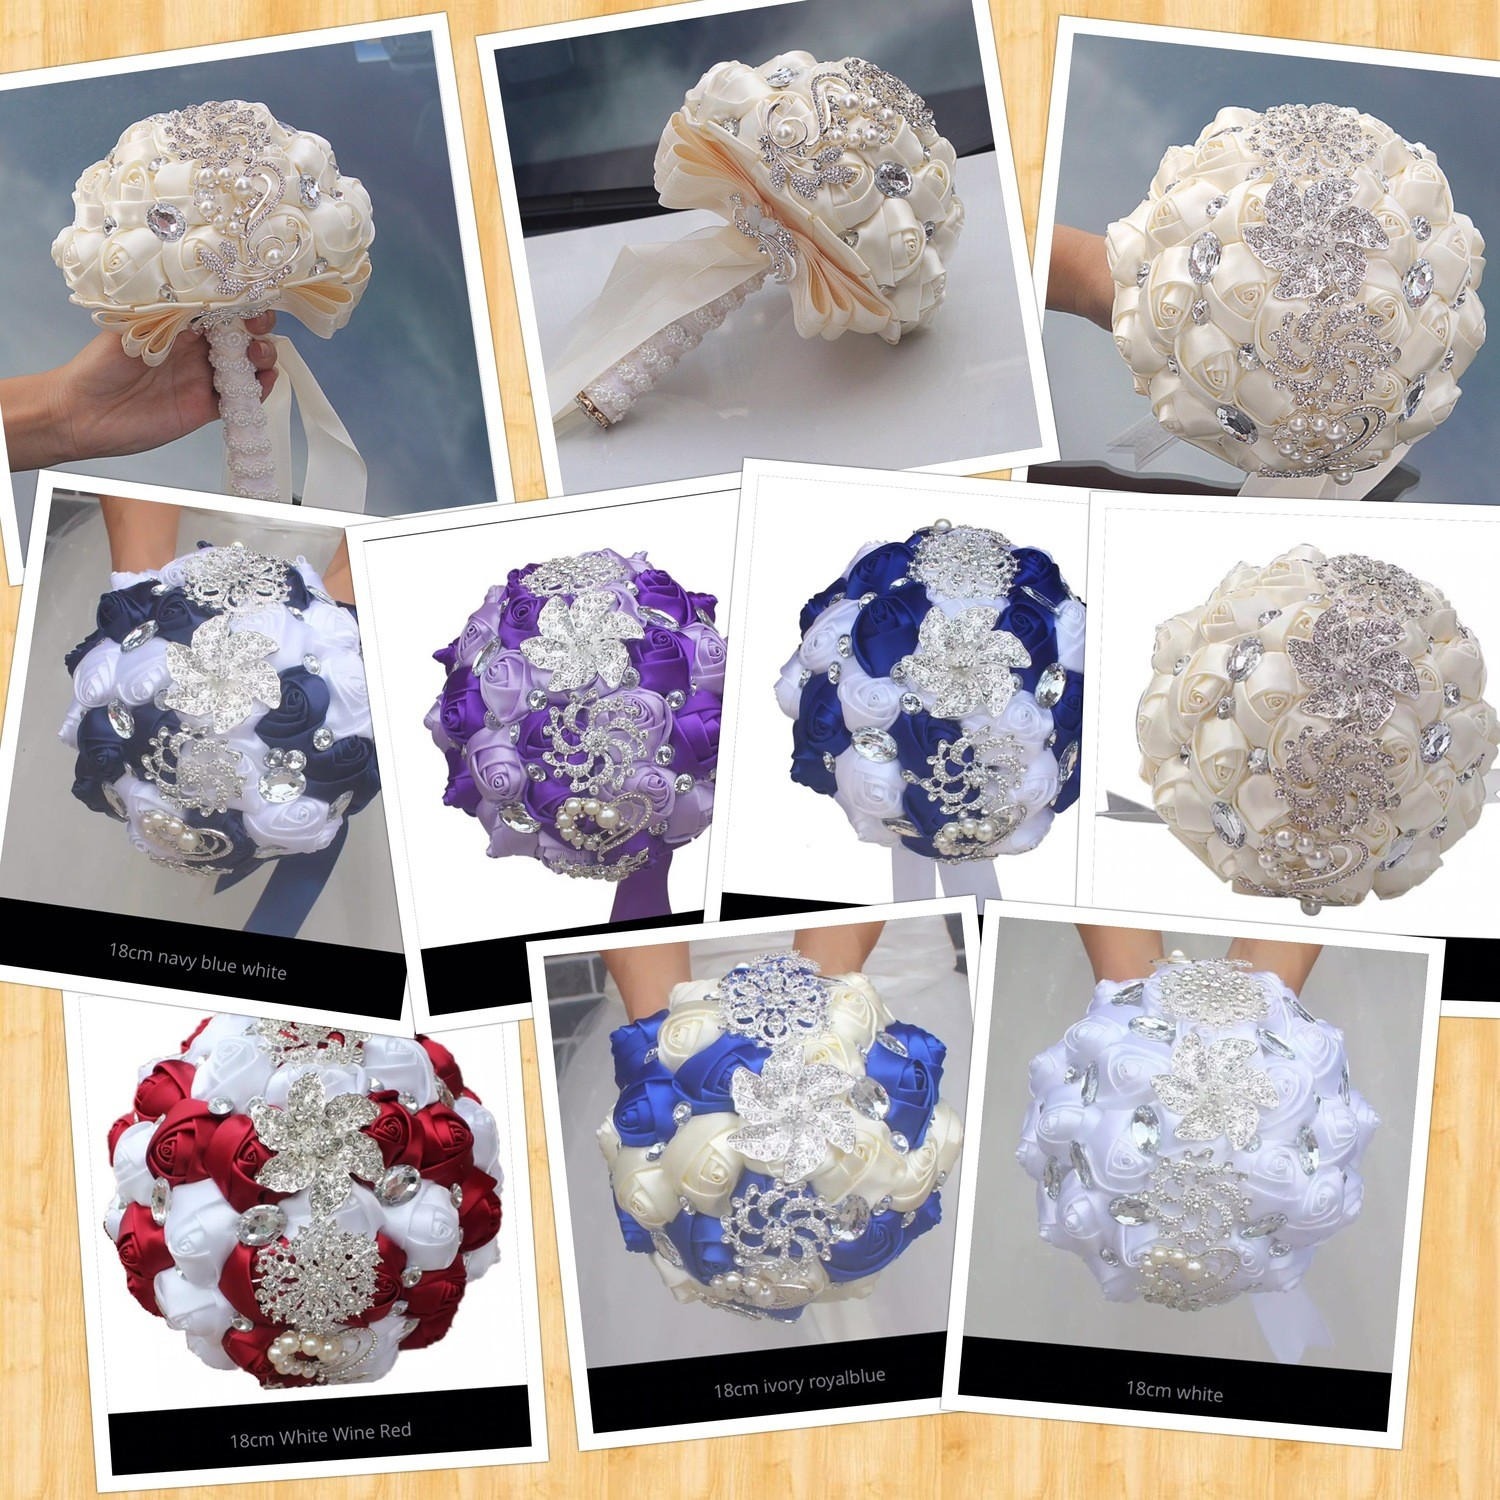 Artificial Satin Hand made Rhinestone Bridal Wedding Bouquet. 11 color choices or customized